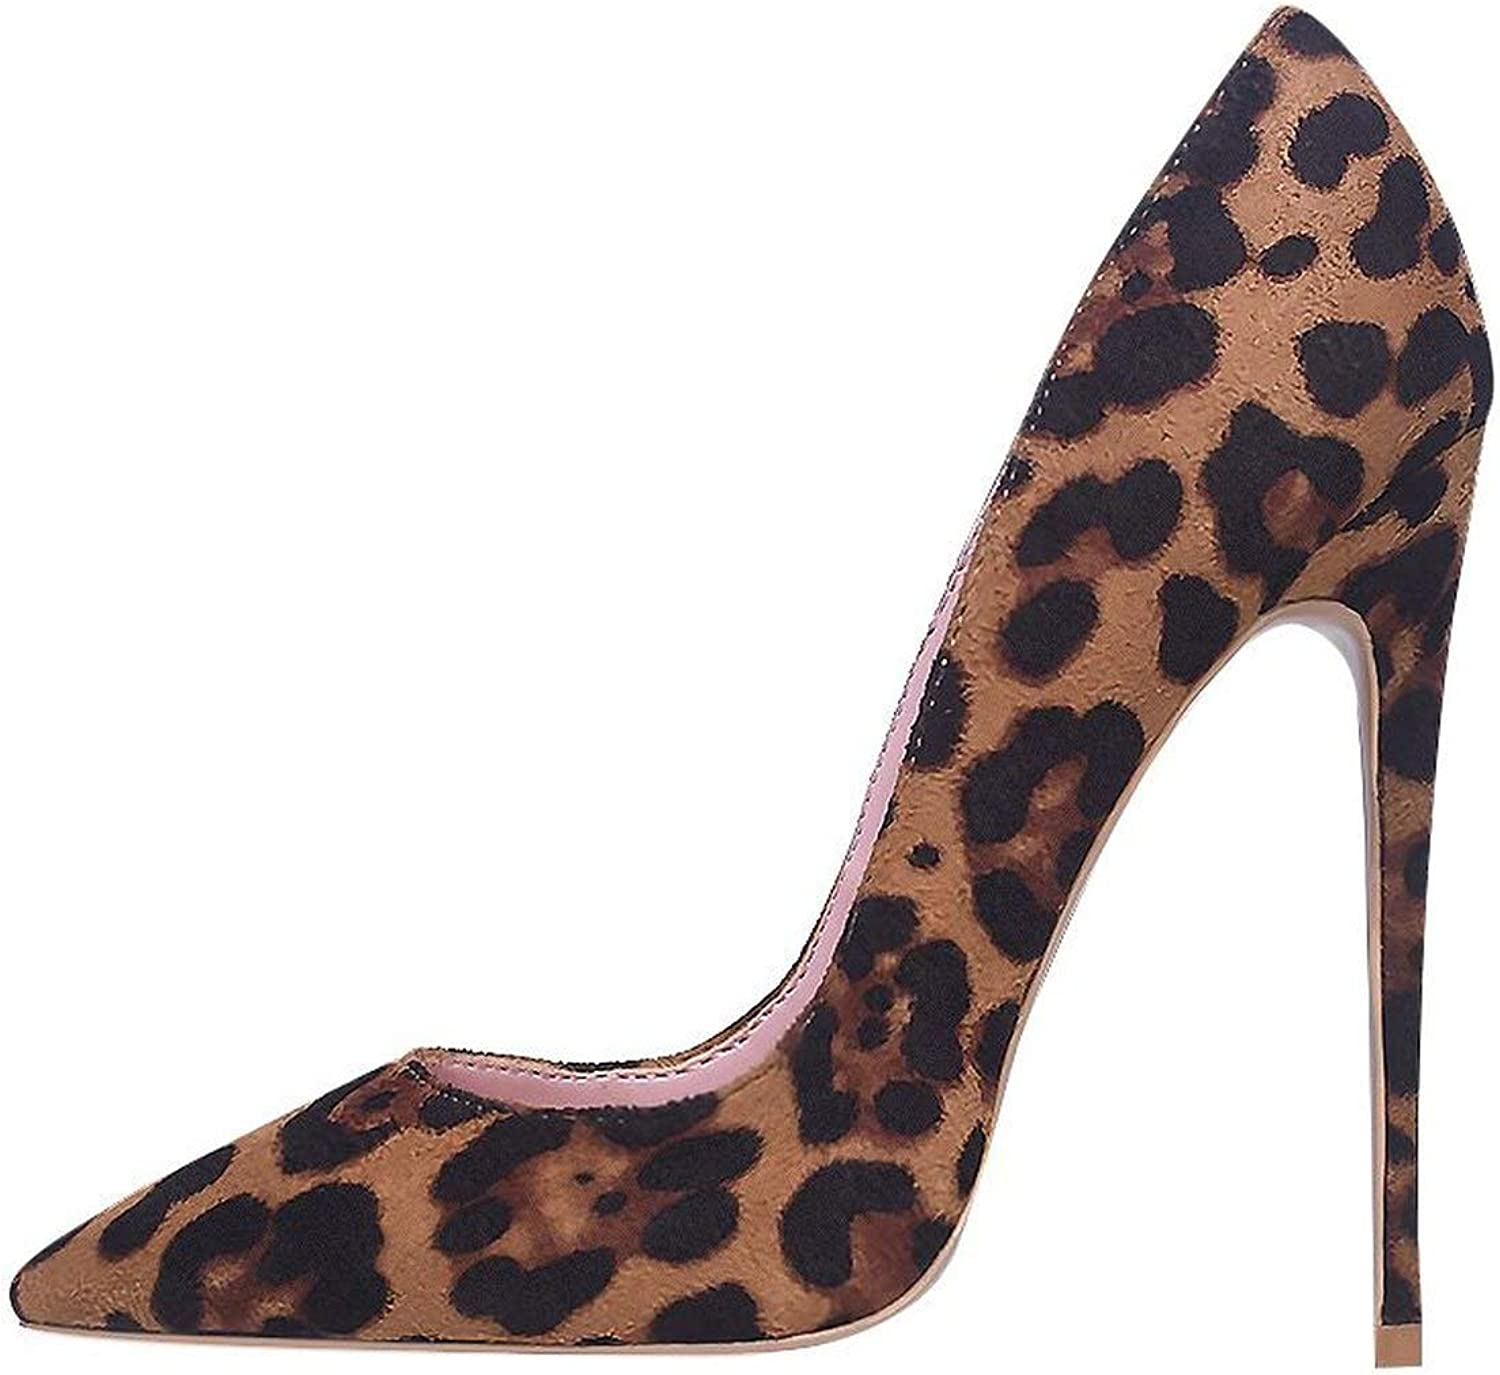 High Heels Pumps FLeopard Print Sexys 10 12cm Party Heeled Designer shoes Plus Big Size 11 12